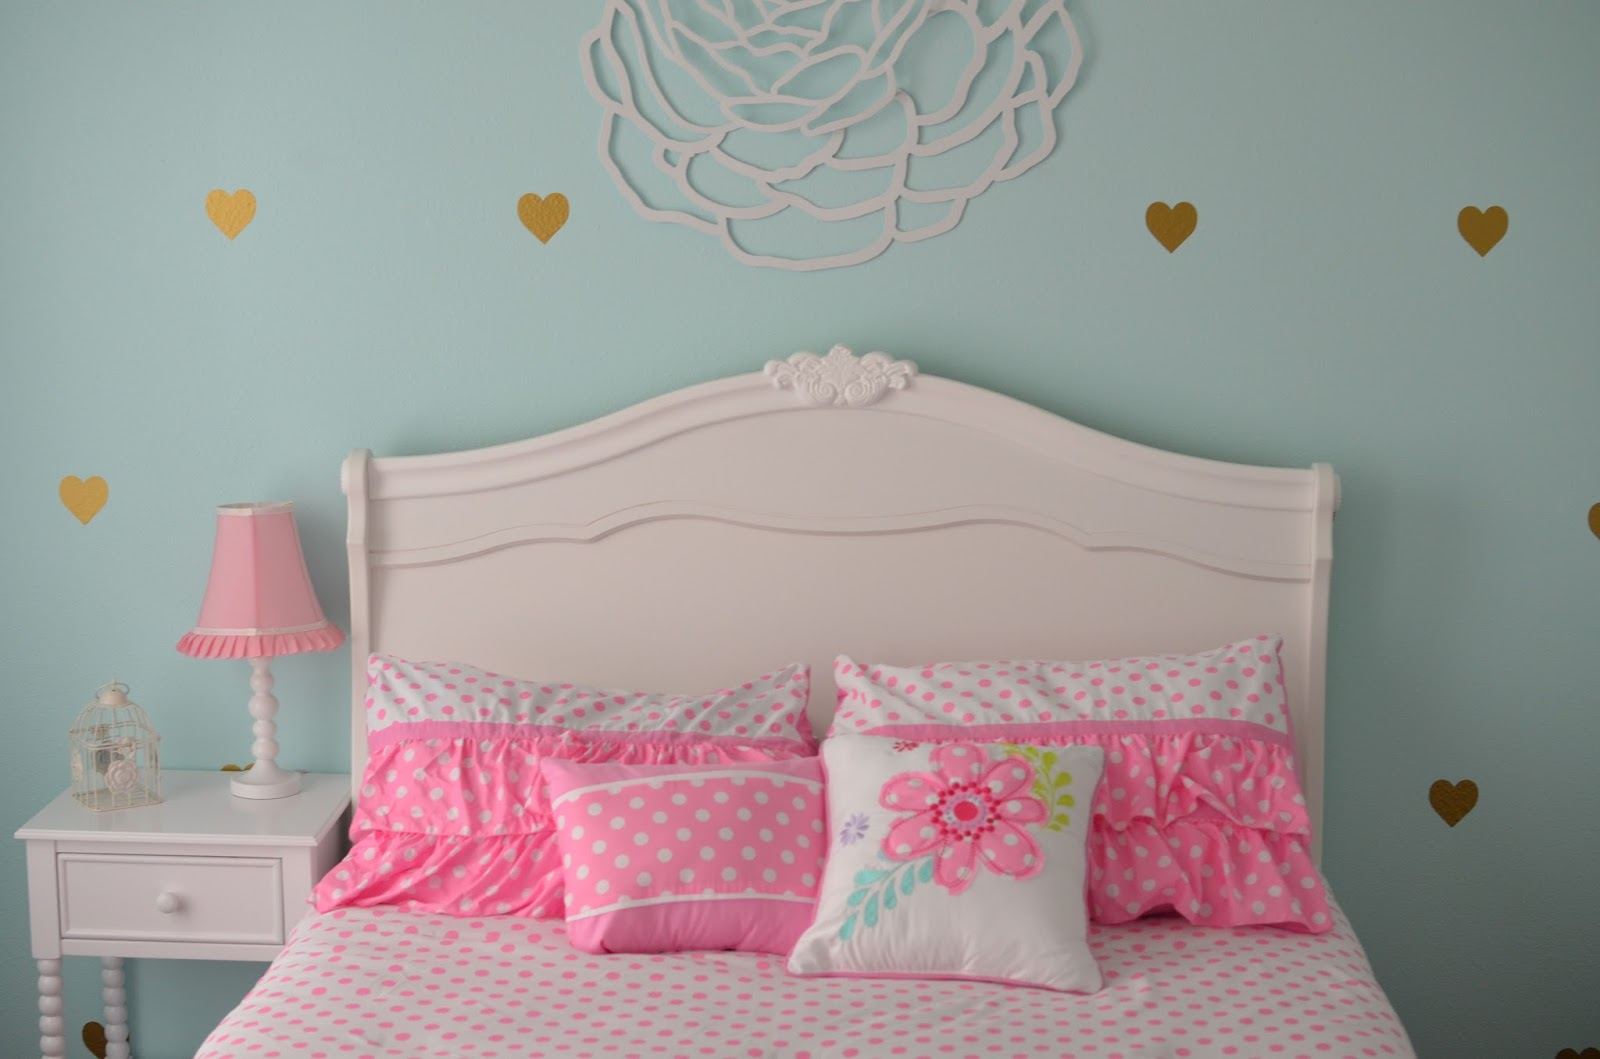 old home furniture finley html with Finleys  Pleted Bedroom on Finley Velvet Sofa moreover Finleys  pleted Bedroom html moreover 4 Poster Bedroom Sets further Polished Concrete Work Surface as well Finleys  pleted Bedroom.